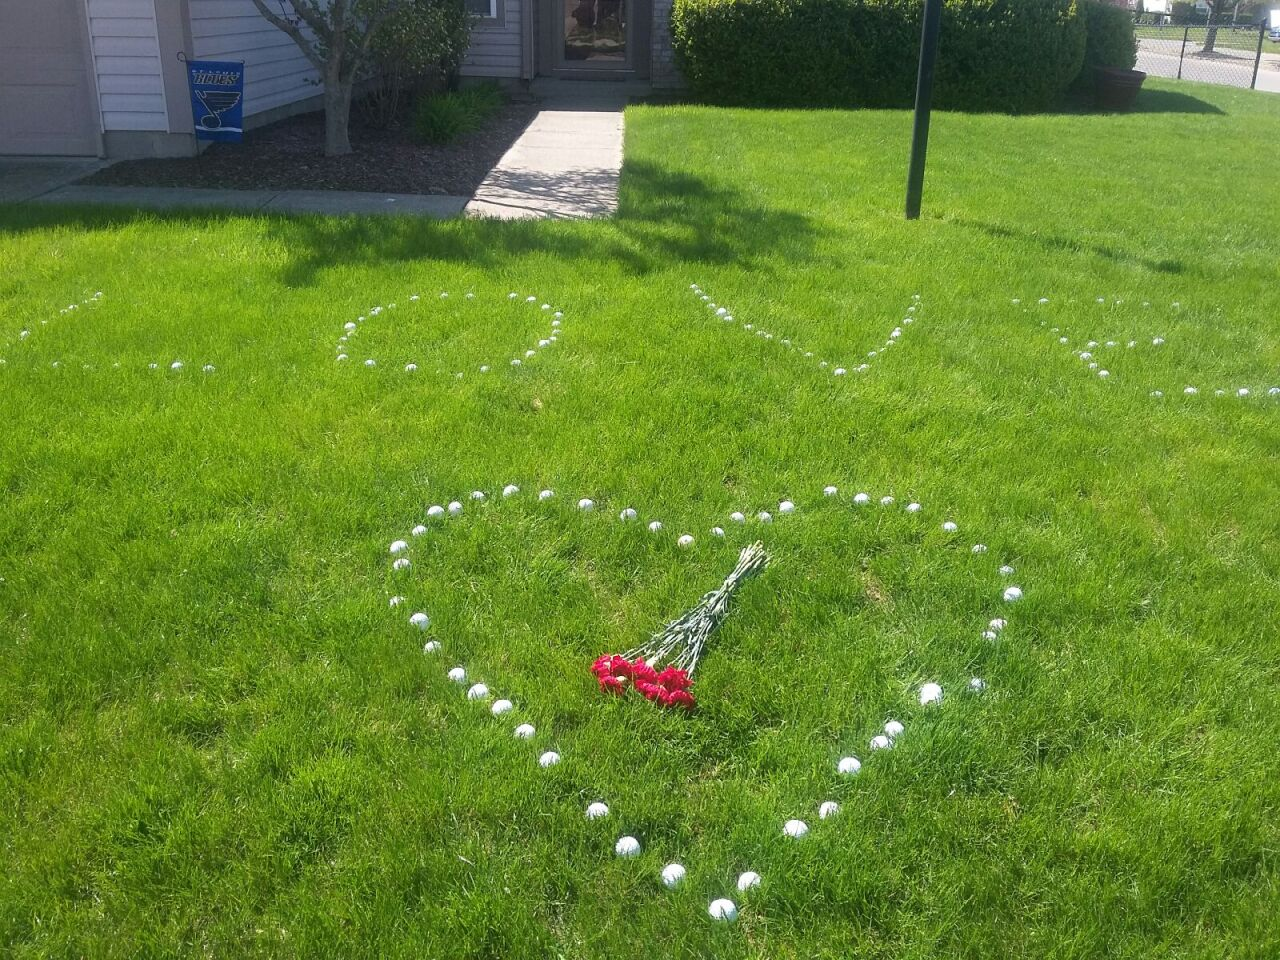 On Sunday, the Alexander family went to Matt's house and found this on his front lawn. Someone earlier came out and spelled the word 'love' with a heart and put a bouquet of red carnations in the center of the heart.   CREDIT: Alexander Family